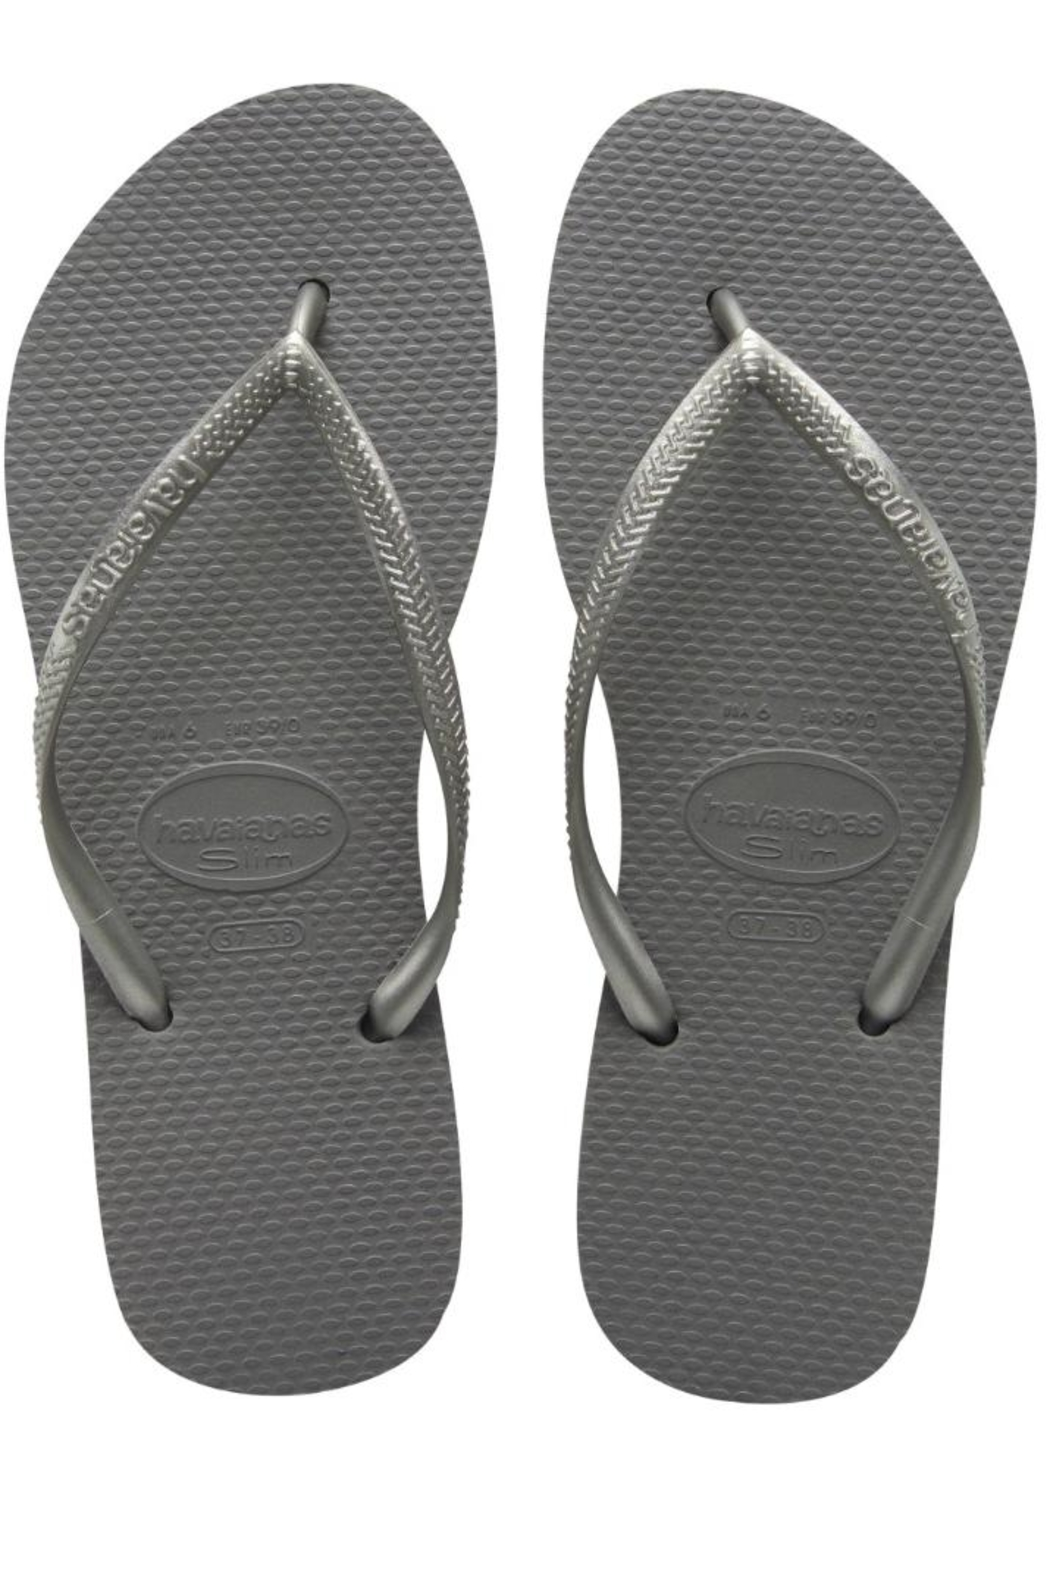 437a0553f20474 Havaianas Grey from Miami by Allie   Chica — Shoptiques